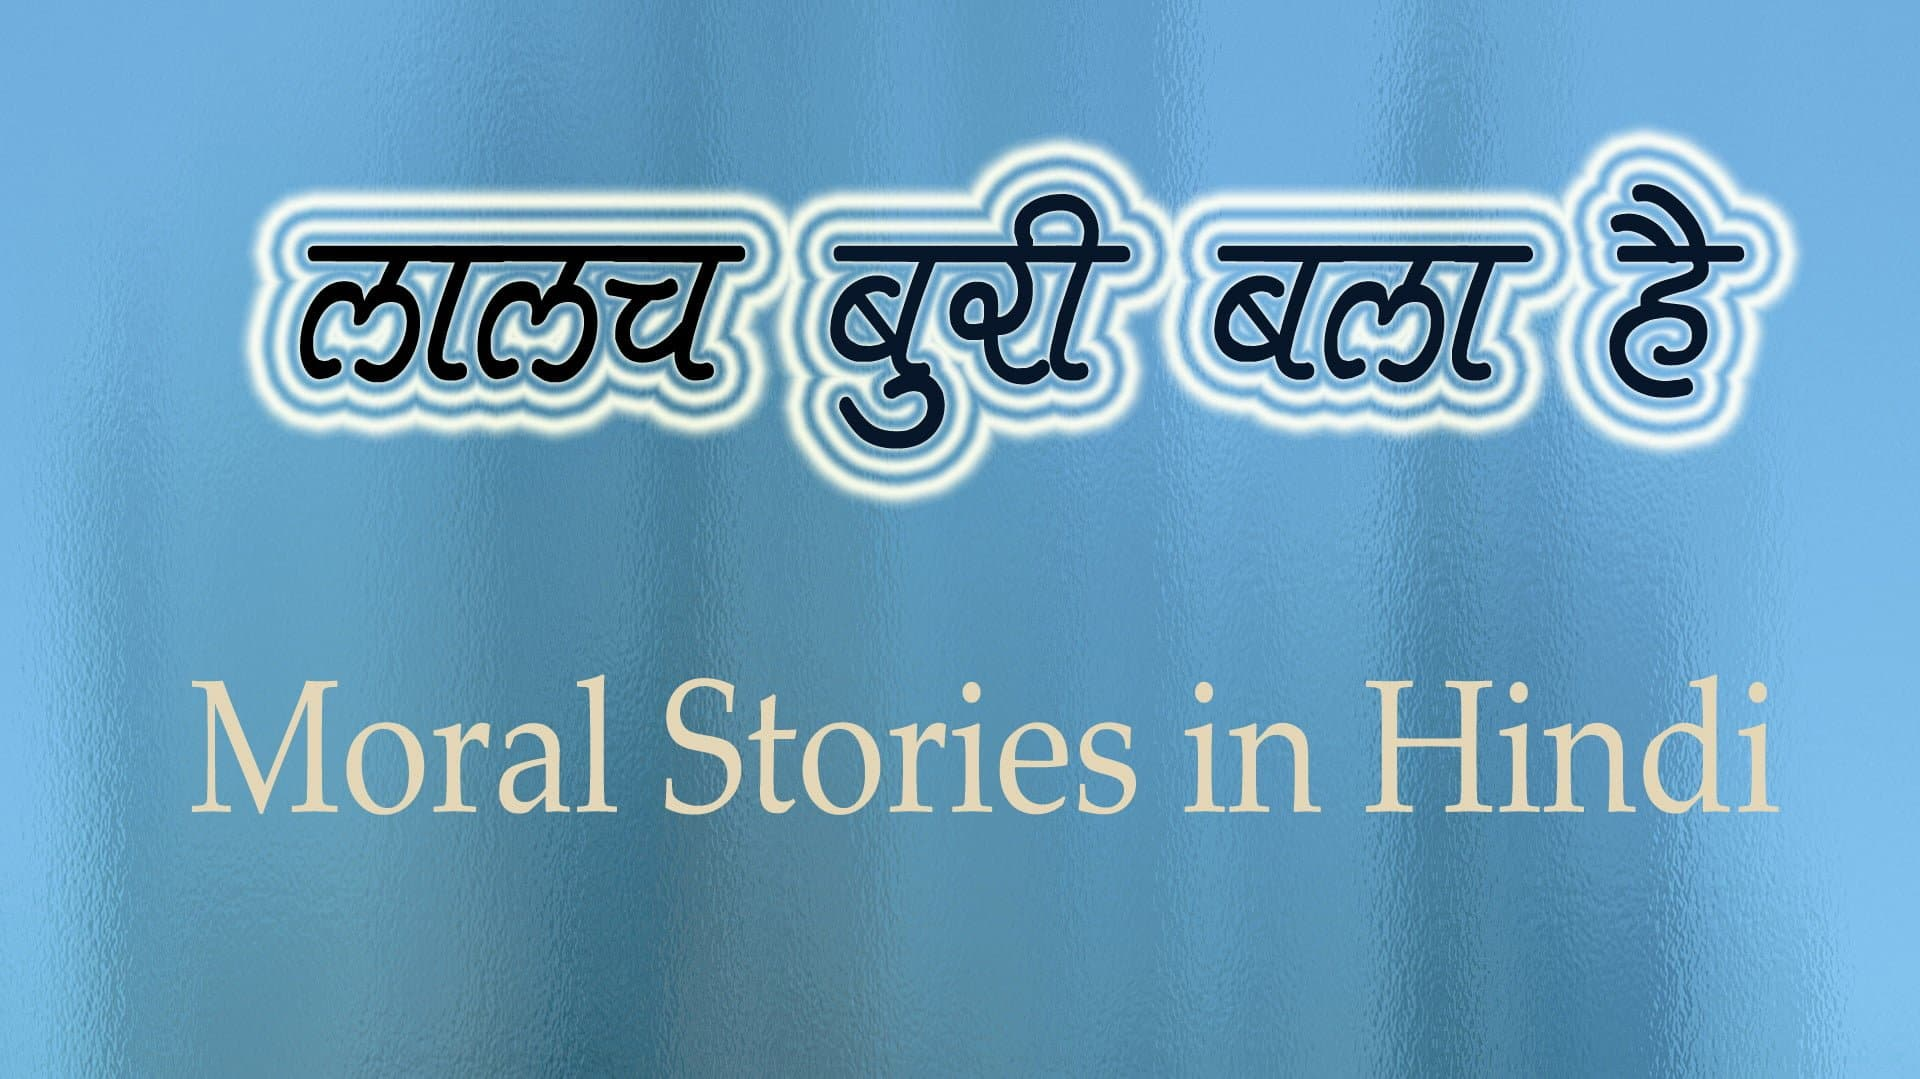 Lalach Buri Bala Hai Moral Stories in Hindi